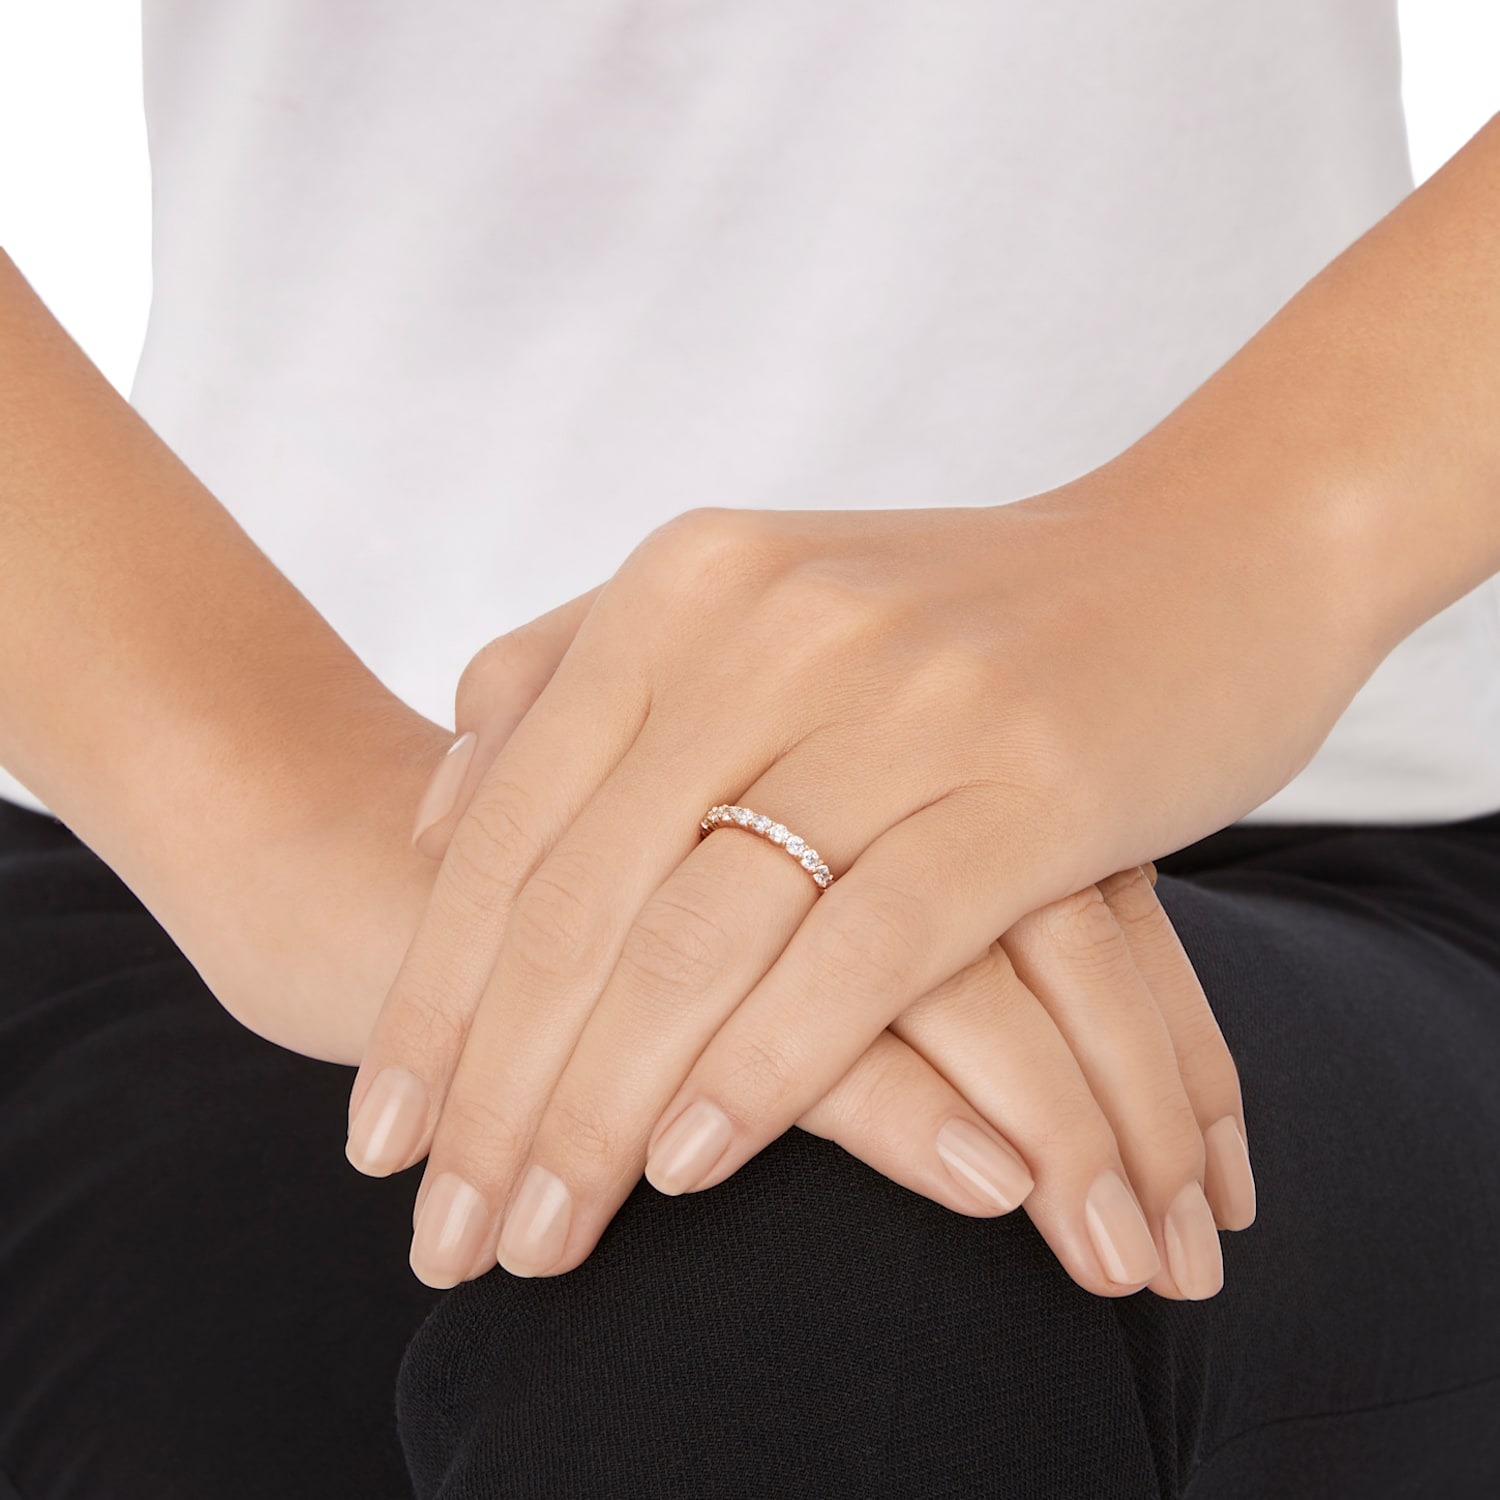 Vittore XL Ring, White, Rose-gold tone plated